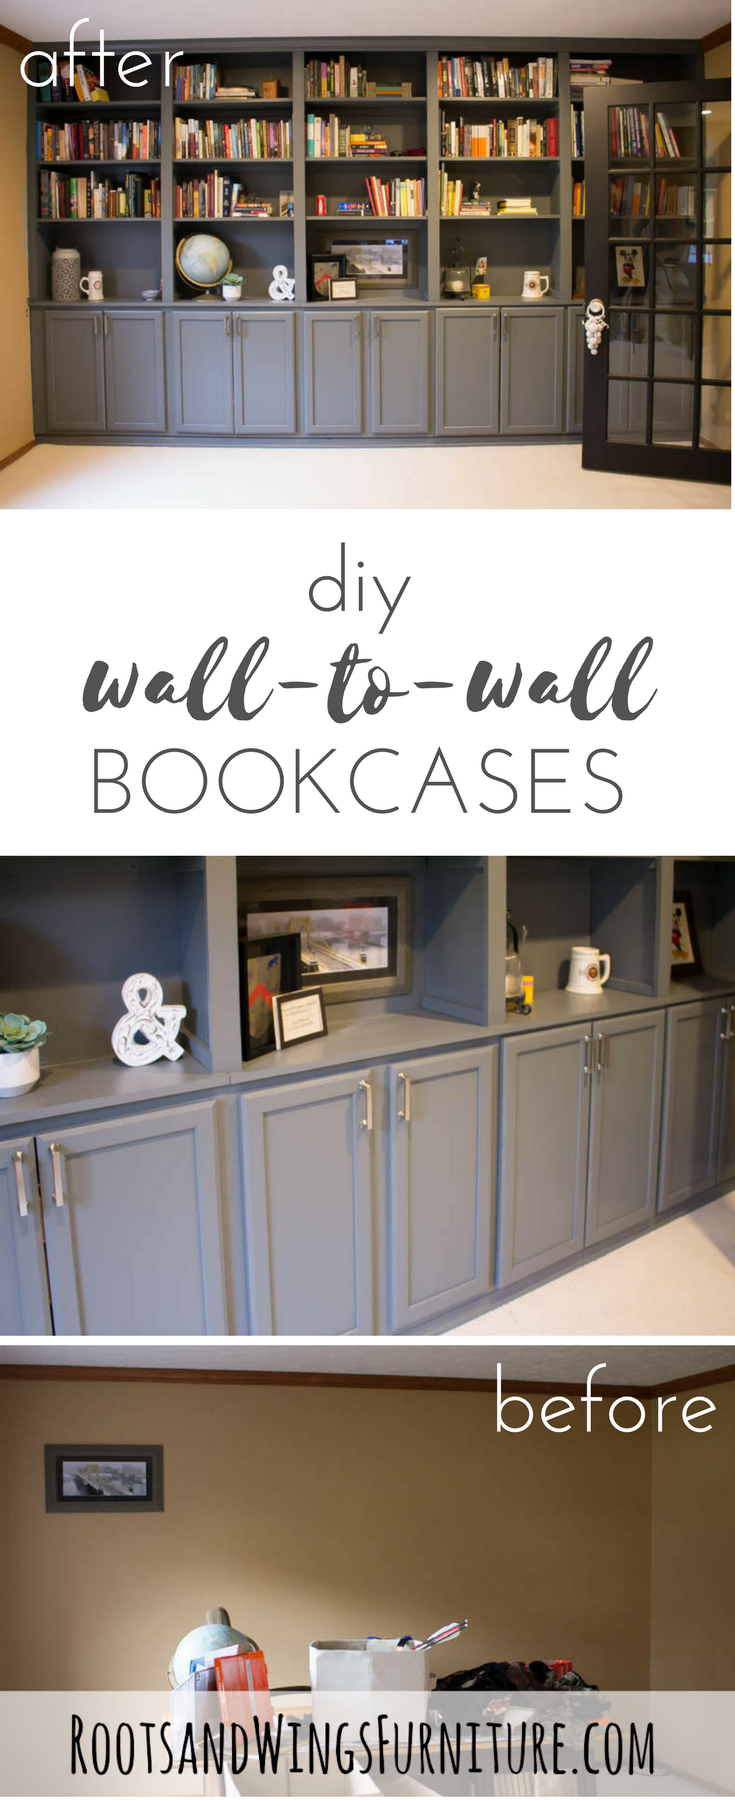 How To Build Built In Shelves The Reveal Roots Wings Furniture Llc Home Office Design Used Kitchen Cabinets Bookshelves Diy